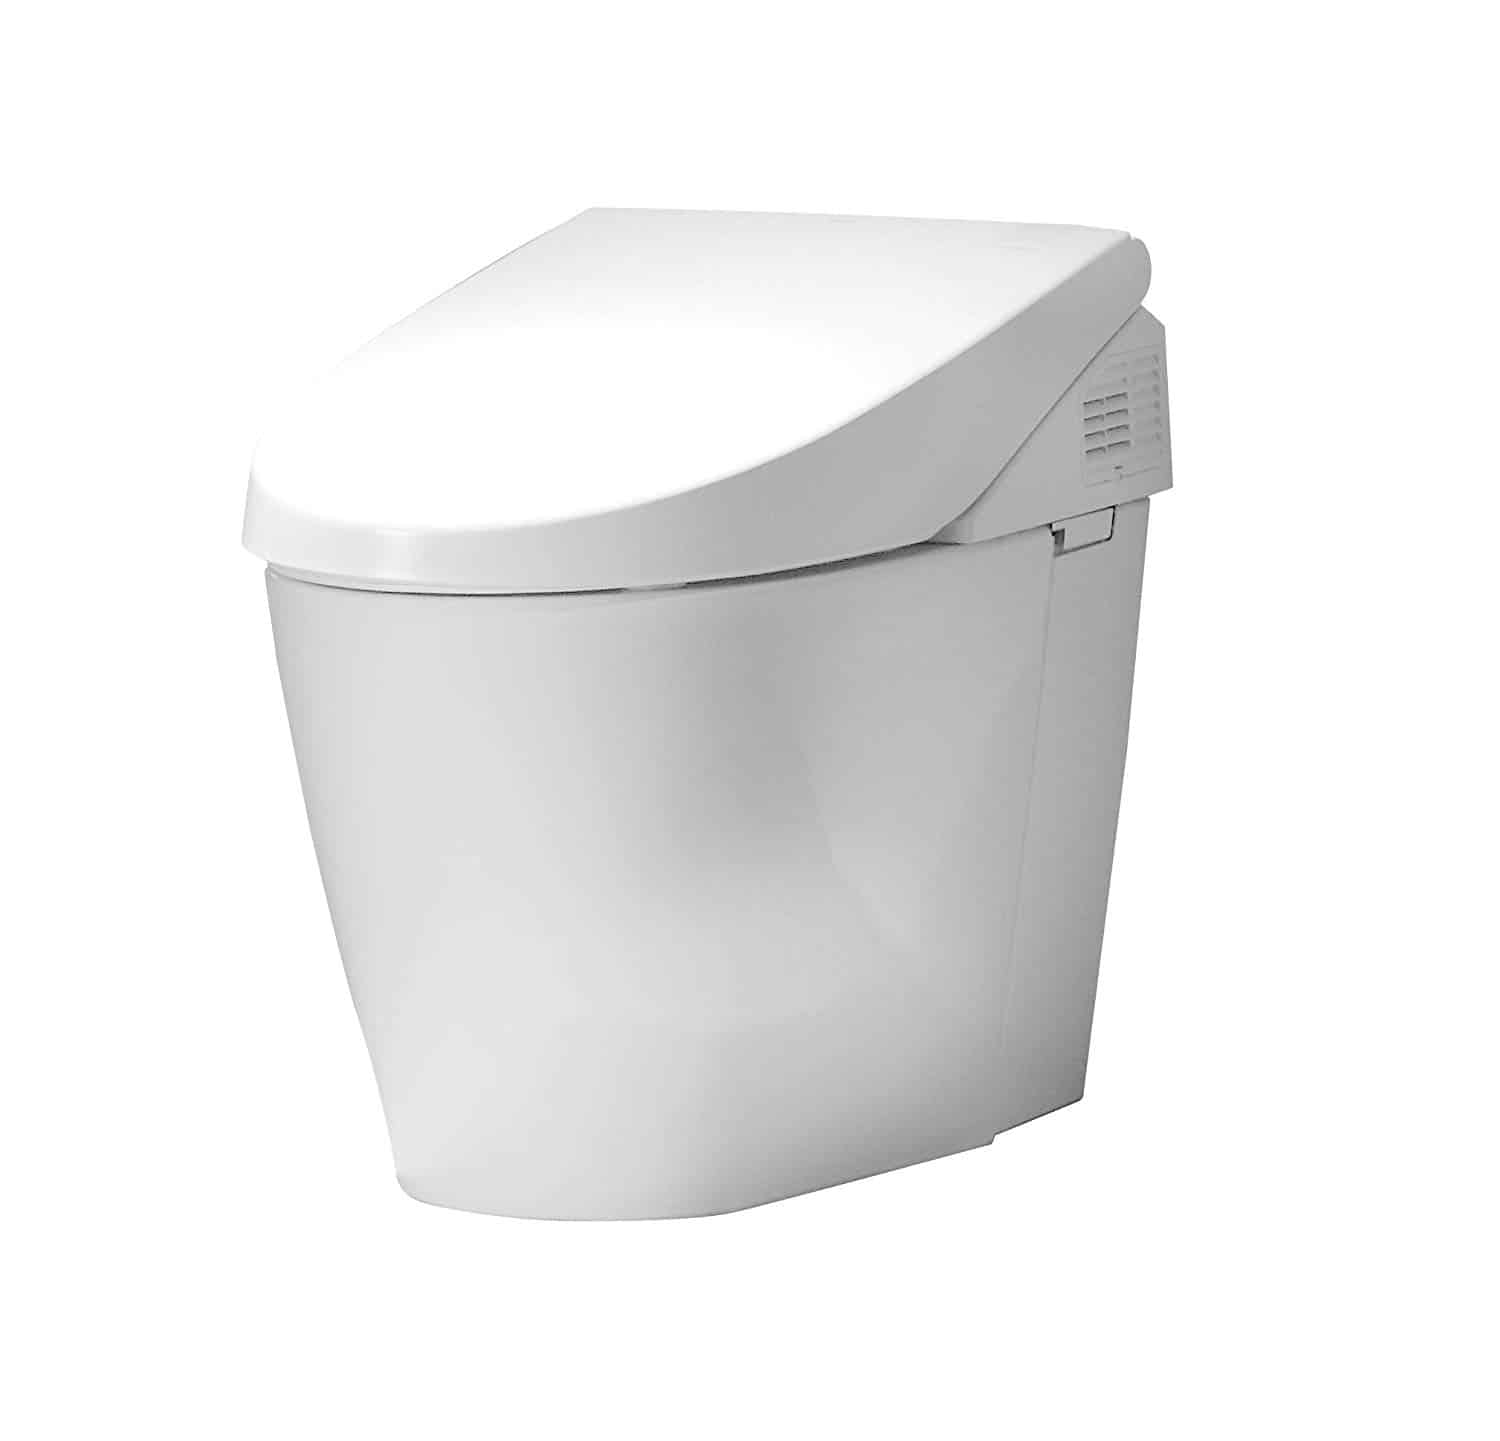 13 Best Flushing Toilets Detailed Guide And Reviews